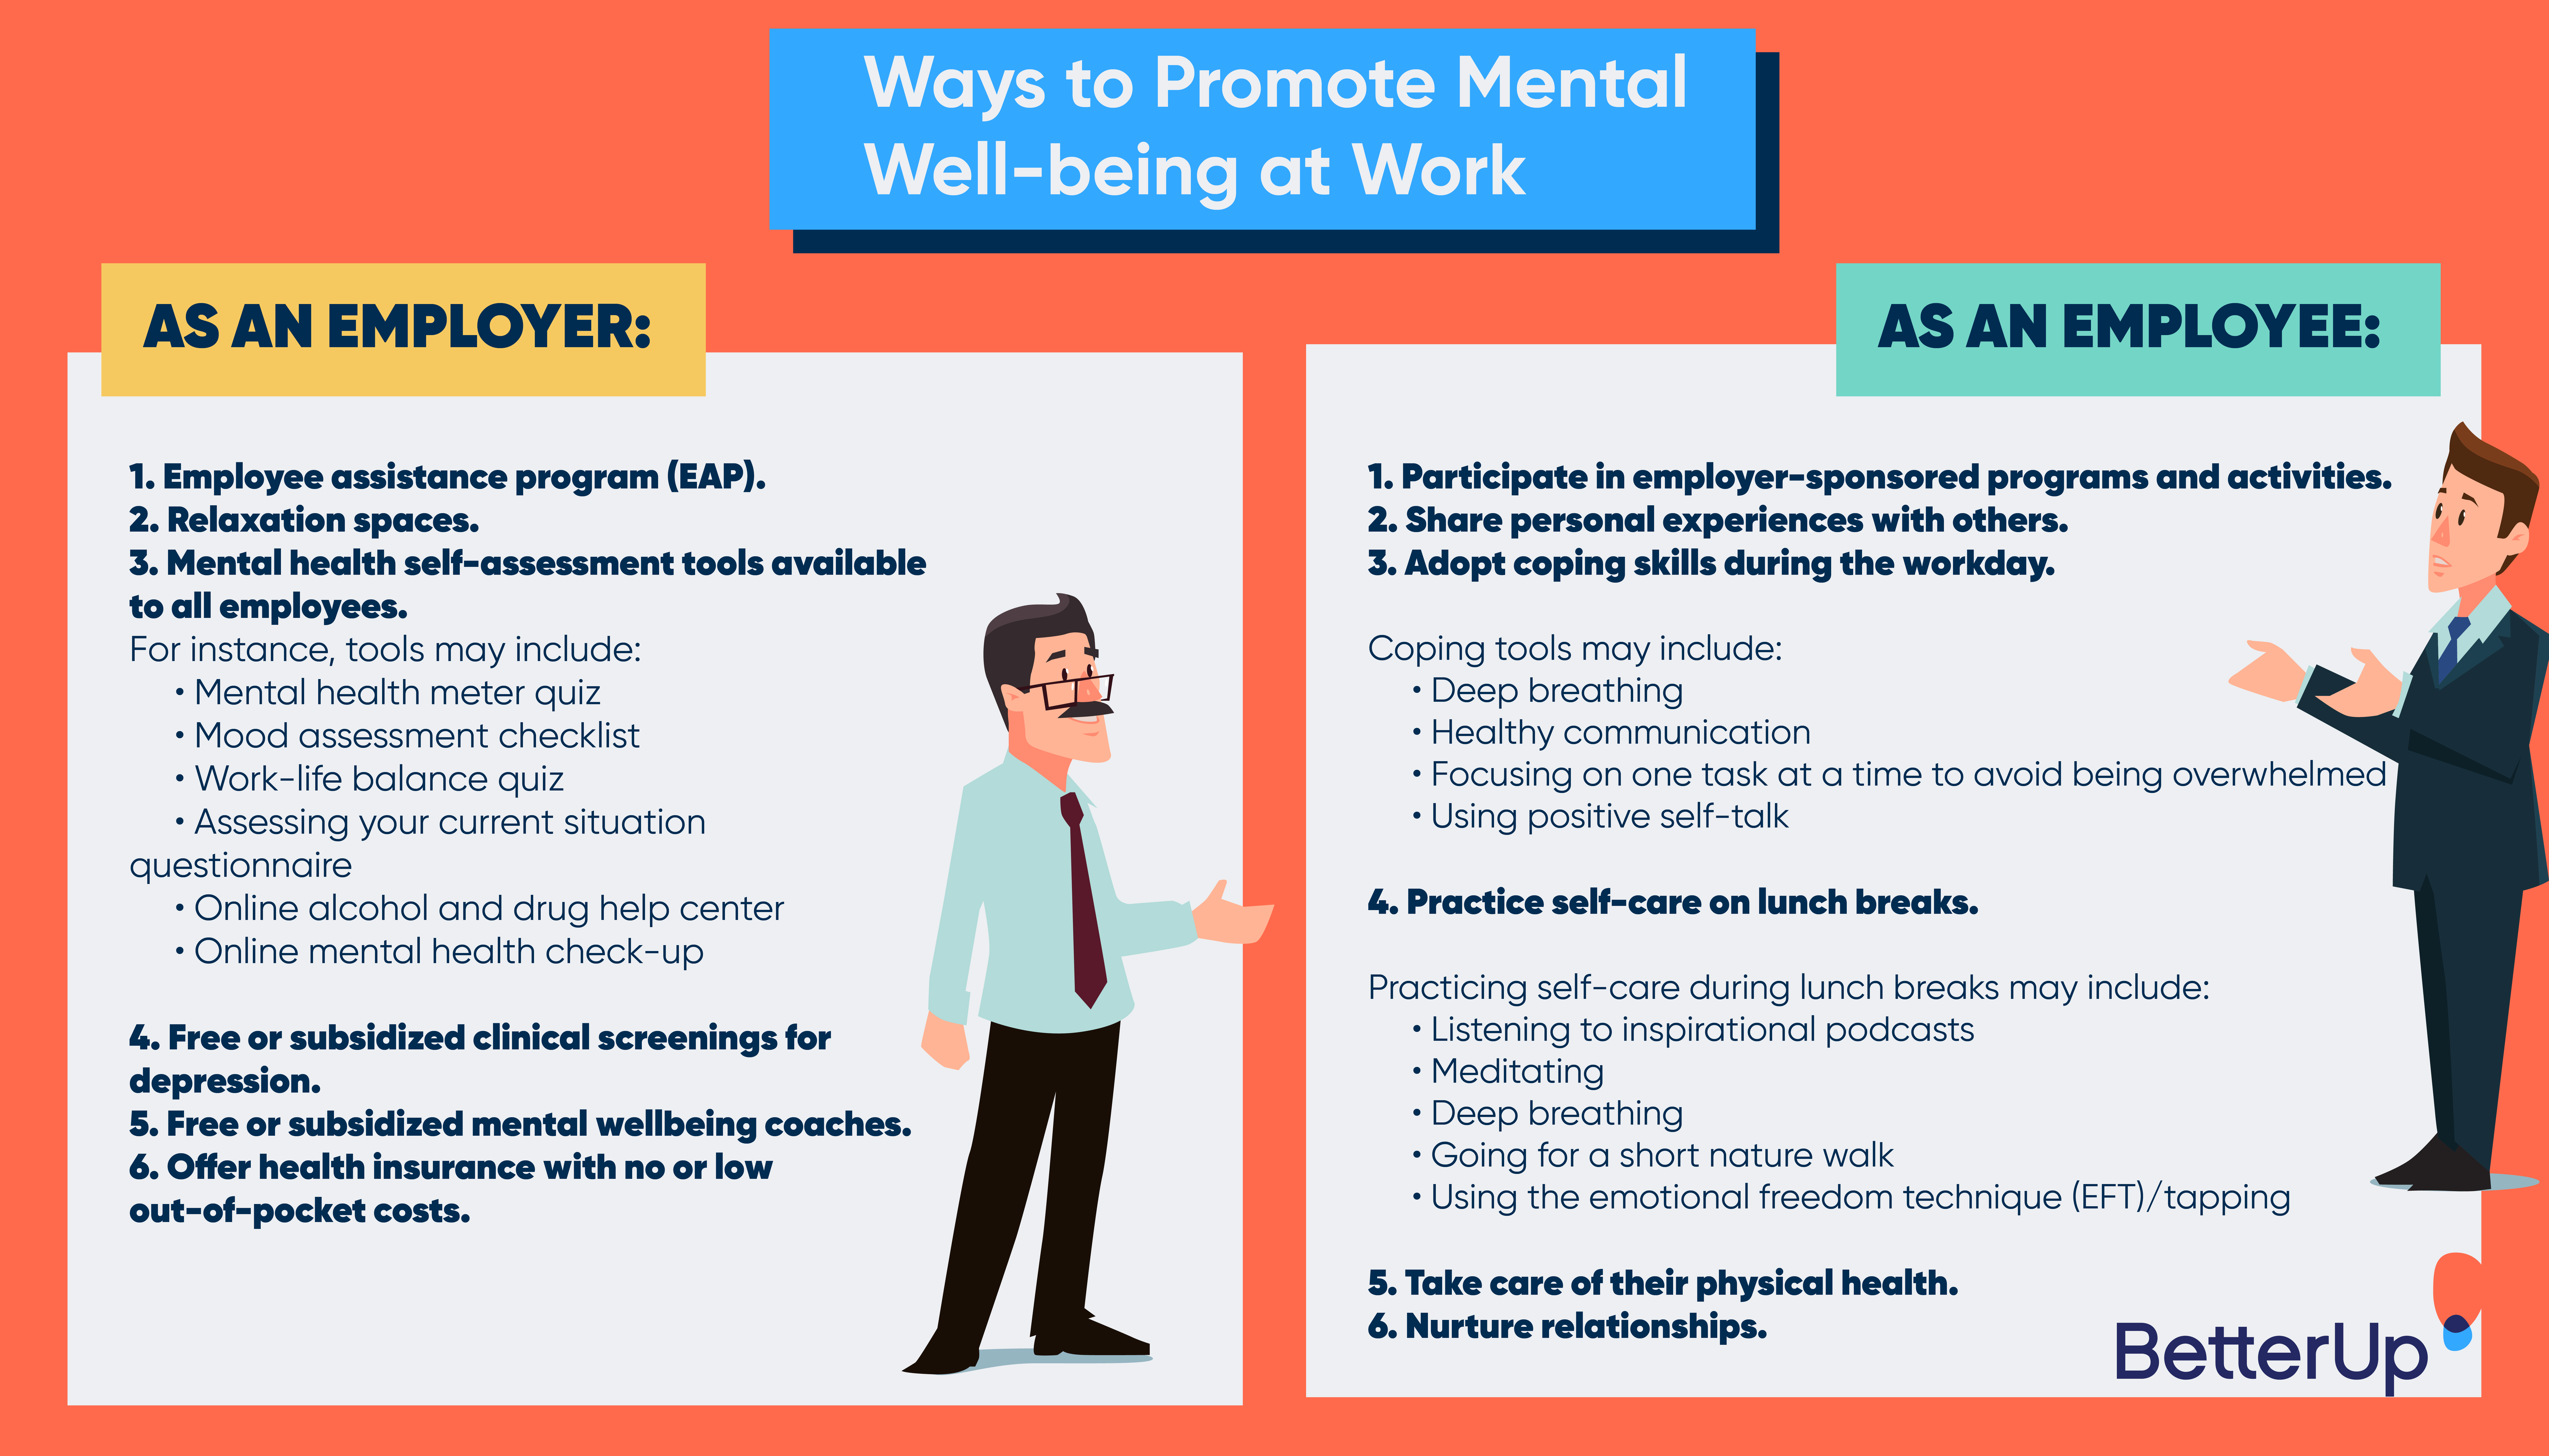 ways to promote mental well-being at work